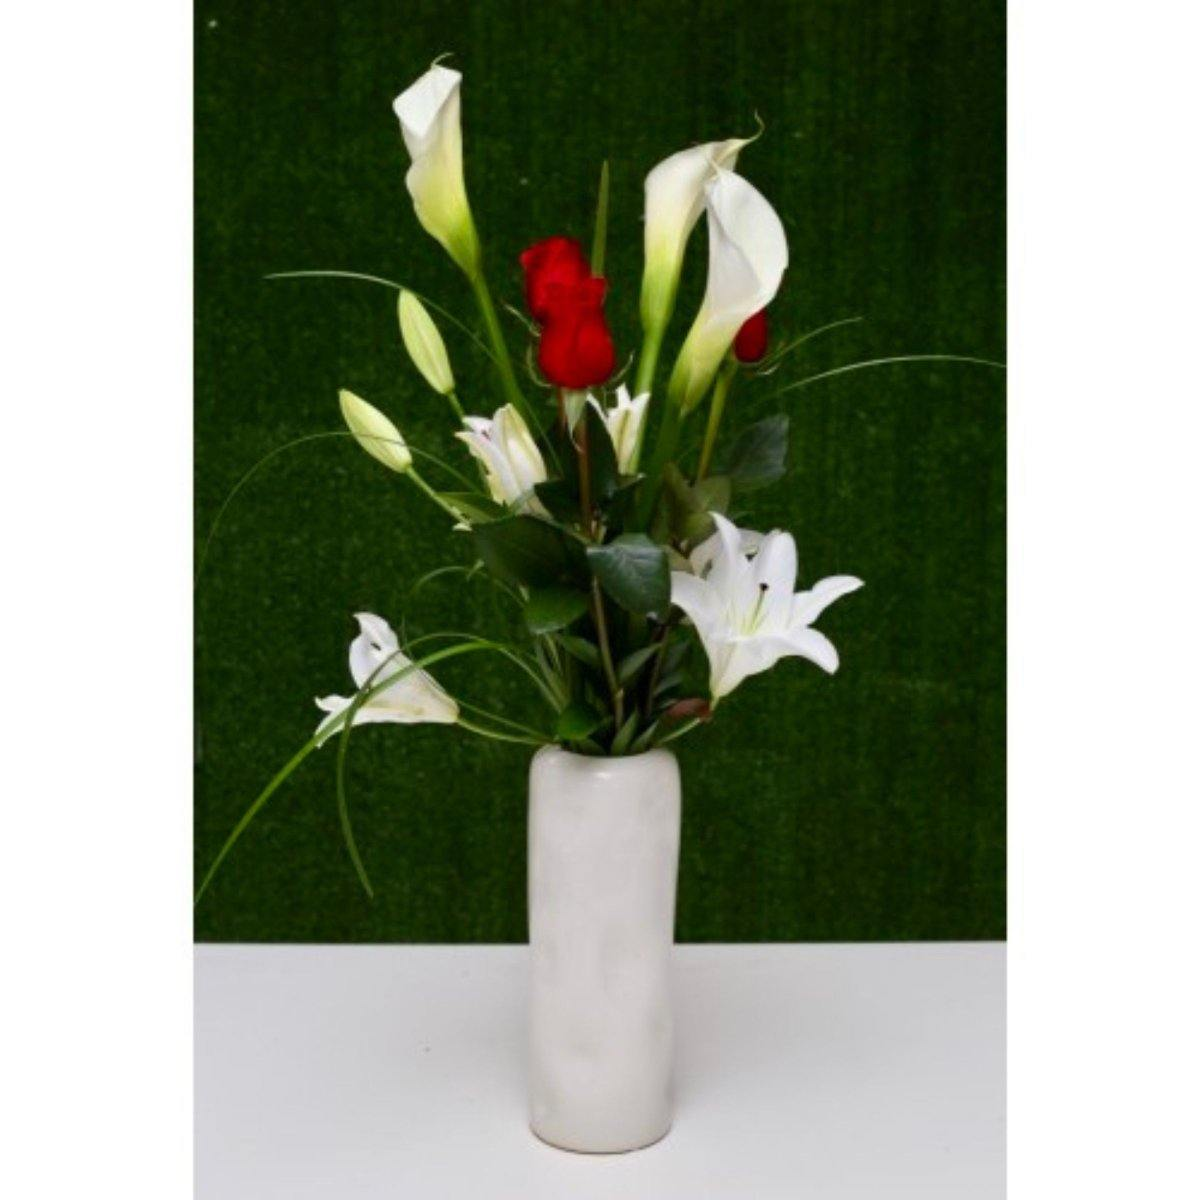 Elegant Floral Wonder in a Ceramic Vase - Shalimar Flower Shop